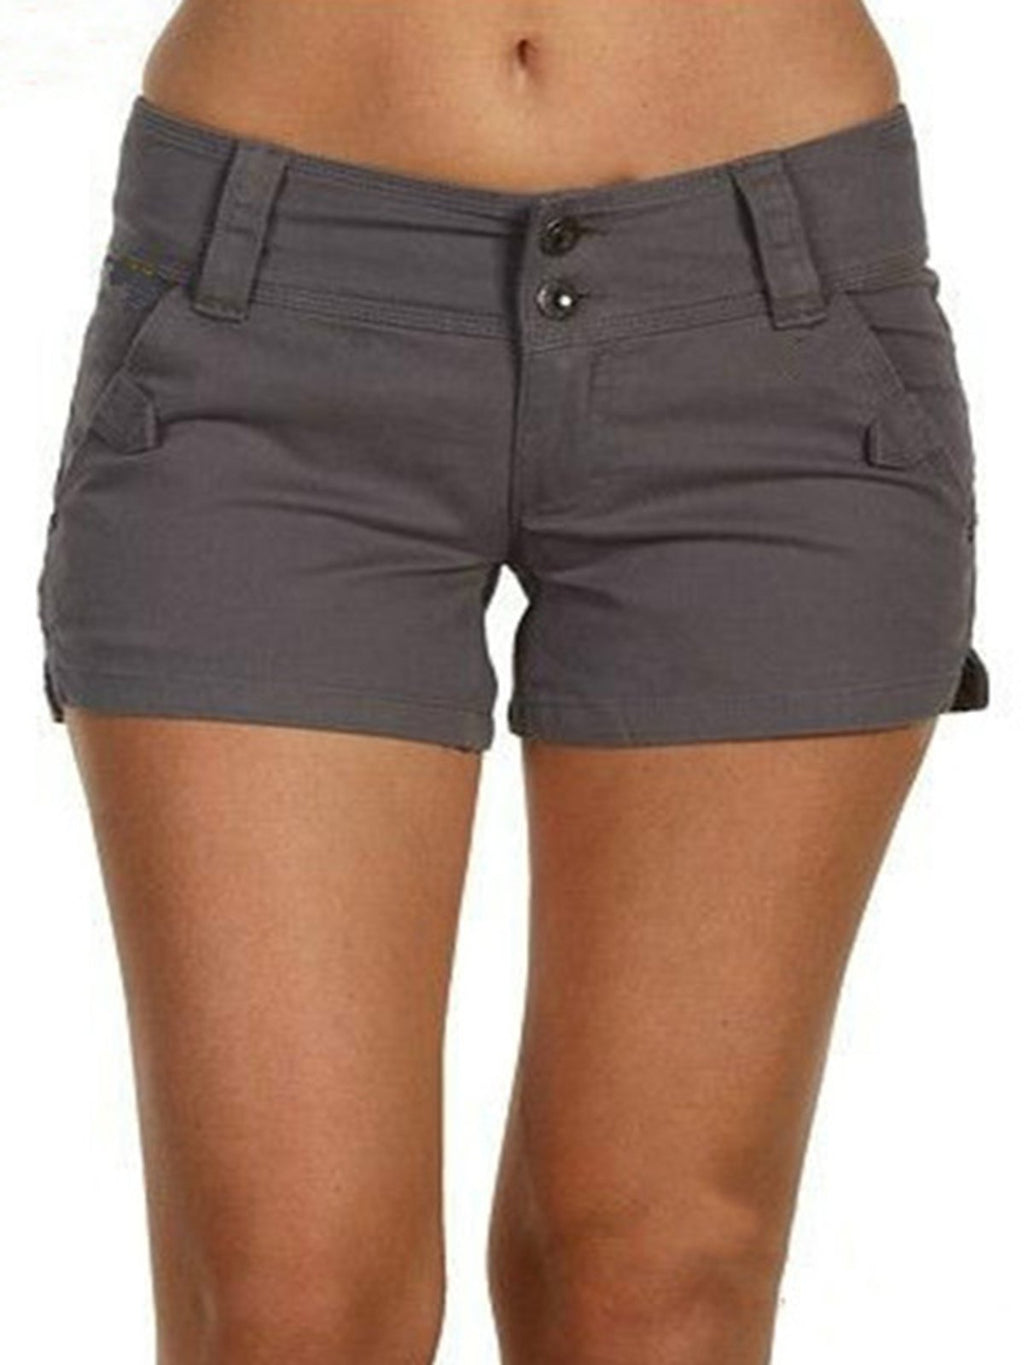 Plus Size Women Summer Shorts With Pockets